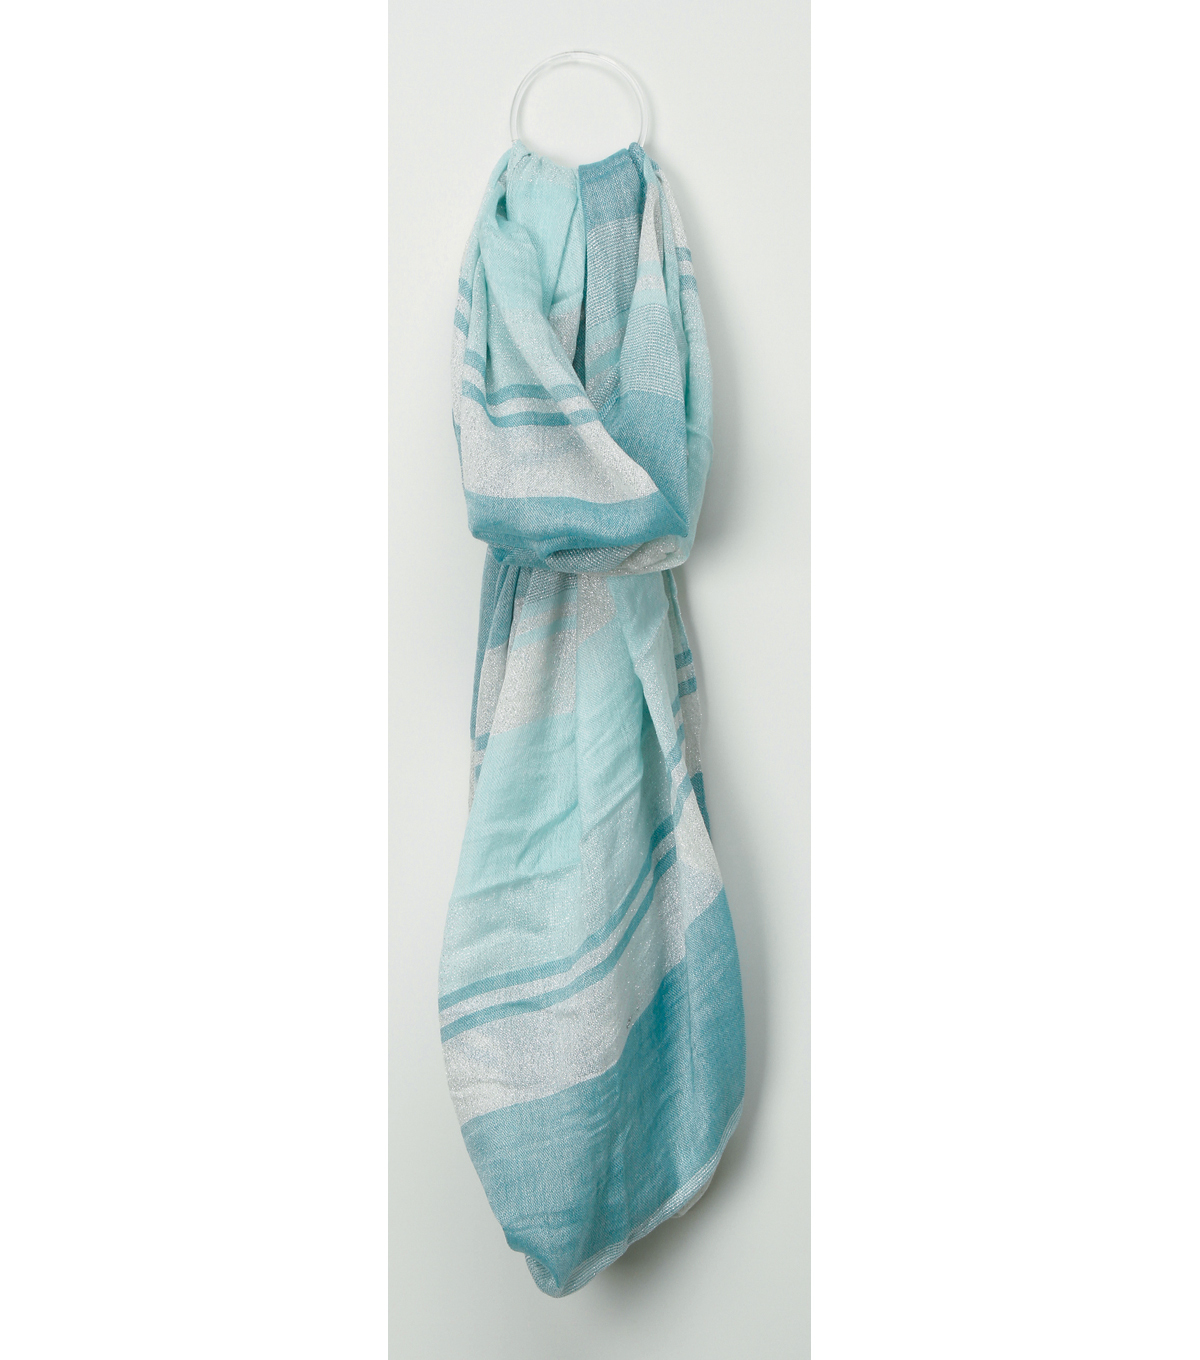 Oxford Street Jewelry Co. Light Blue & White Striped Infinity Scarf